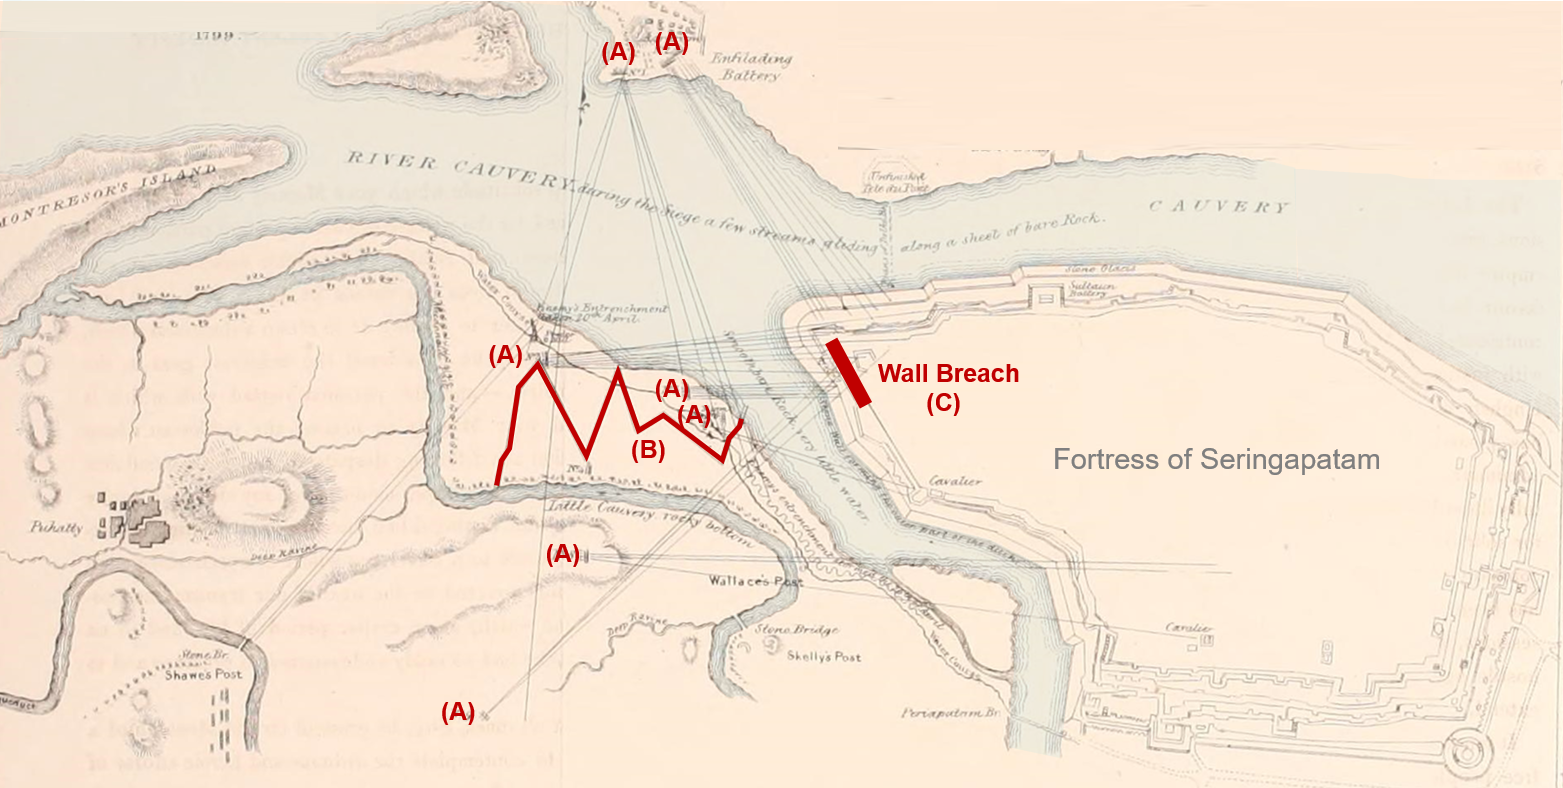 Figure 3 - Assault plan for Seringapatam. Image from author's archive.